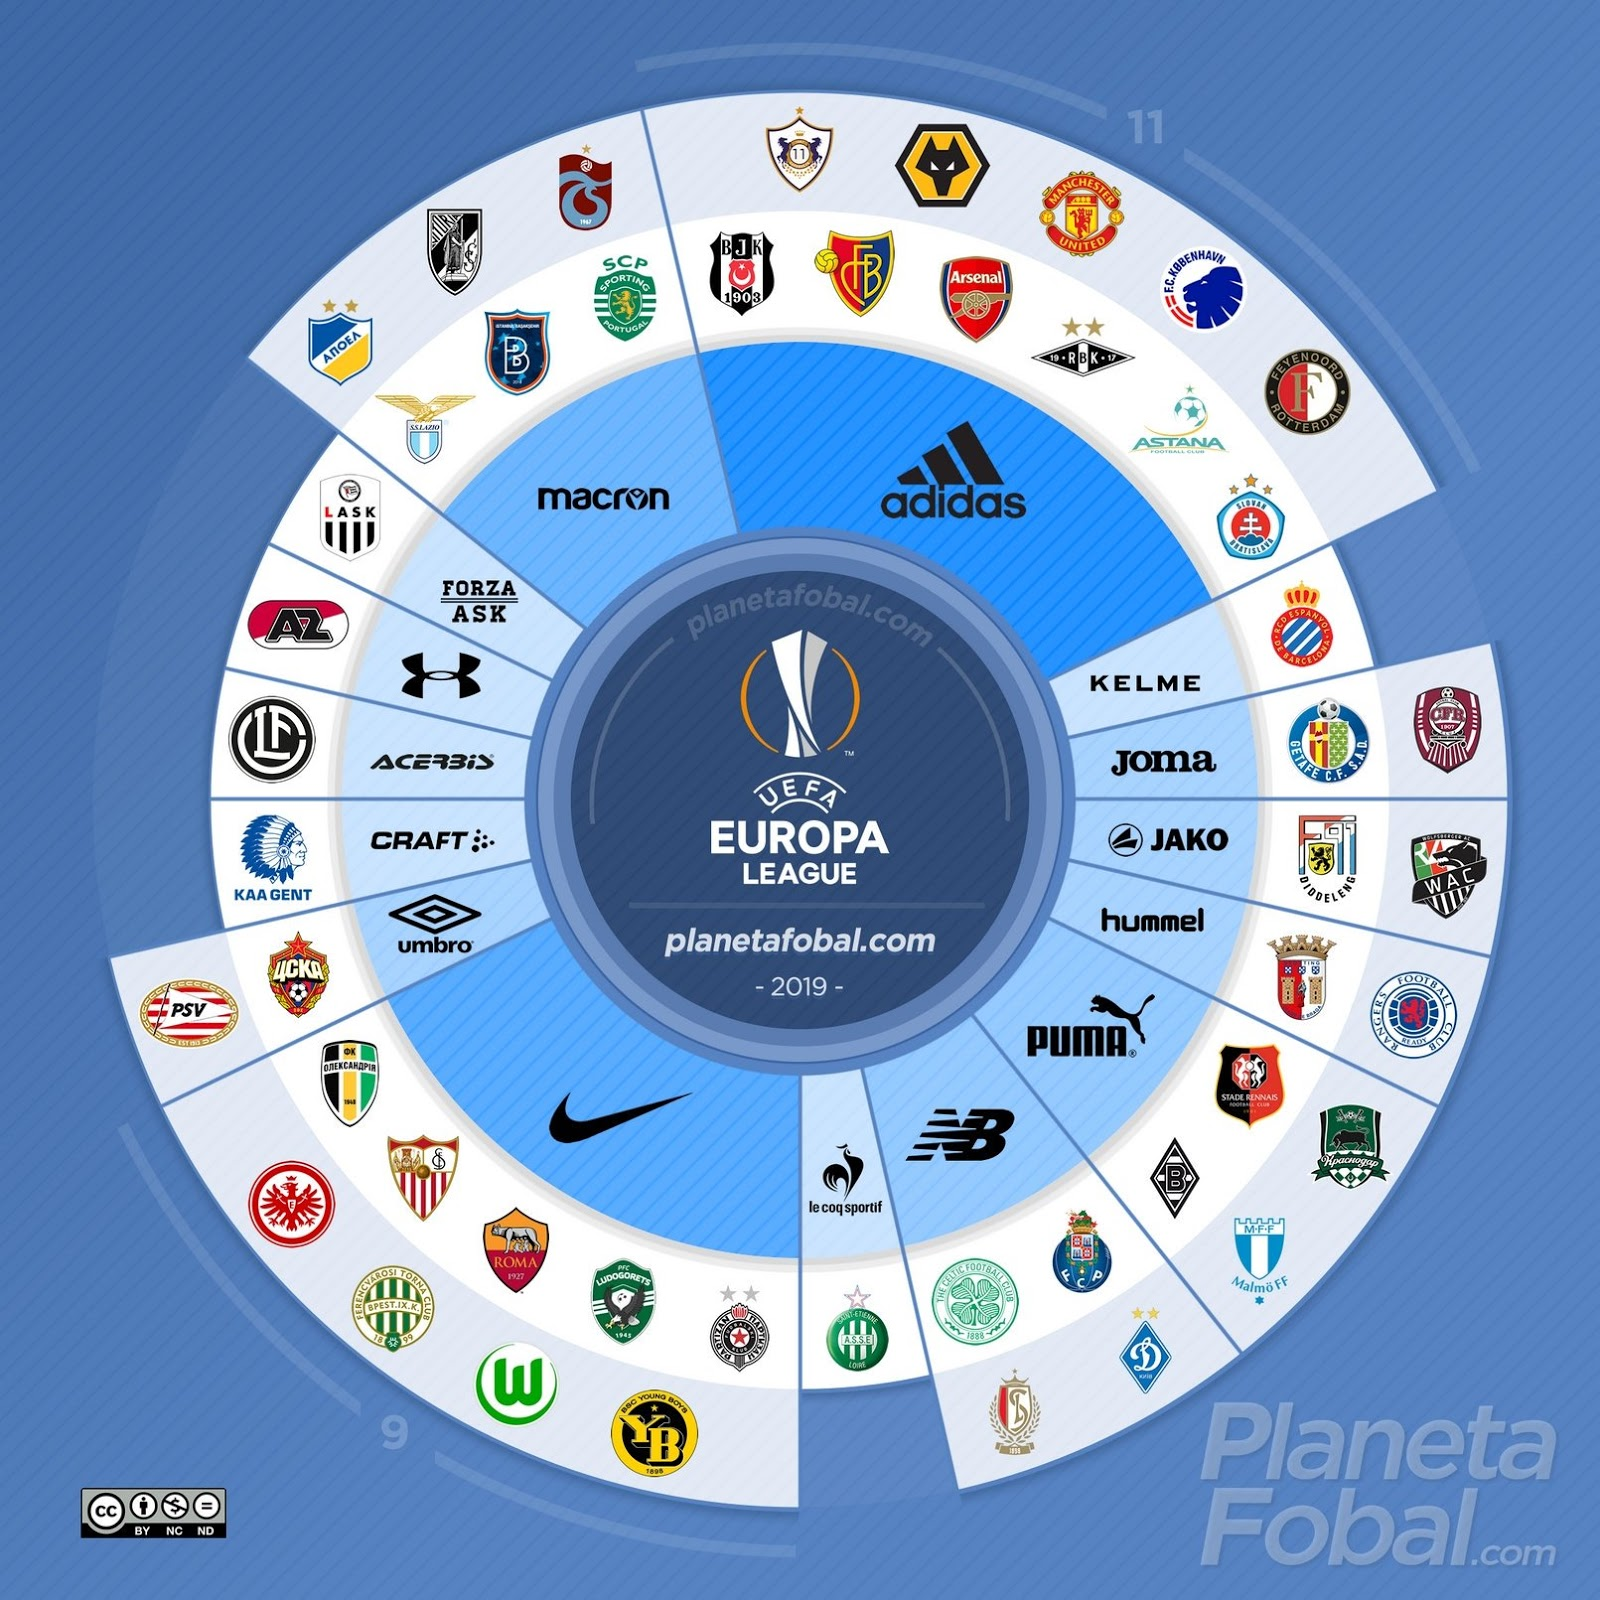 Champions League Group Stage 2020: 2019-20 UEFA Europa League